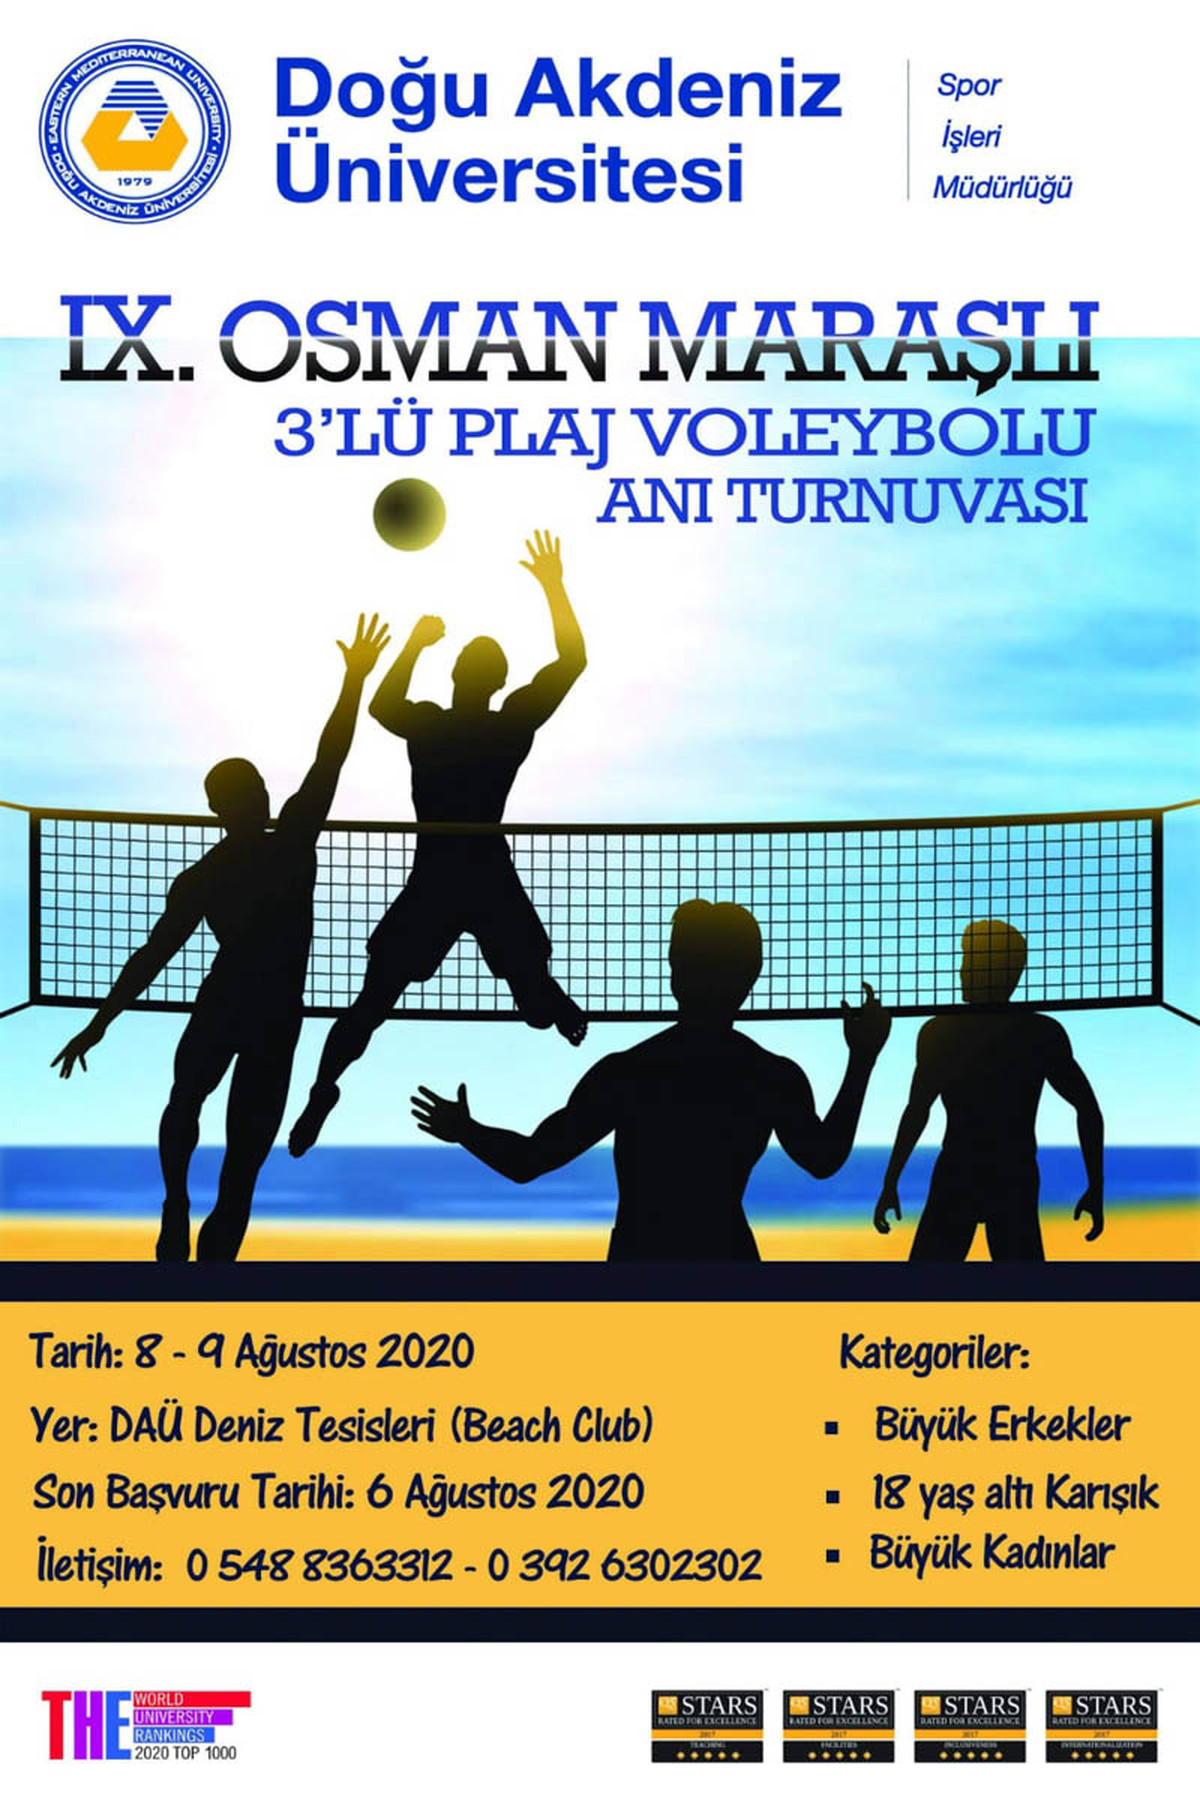 EMU IX. Osman Maraşlı Memorial Tournament To Start